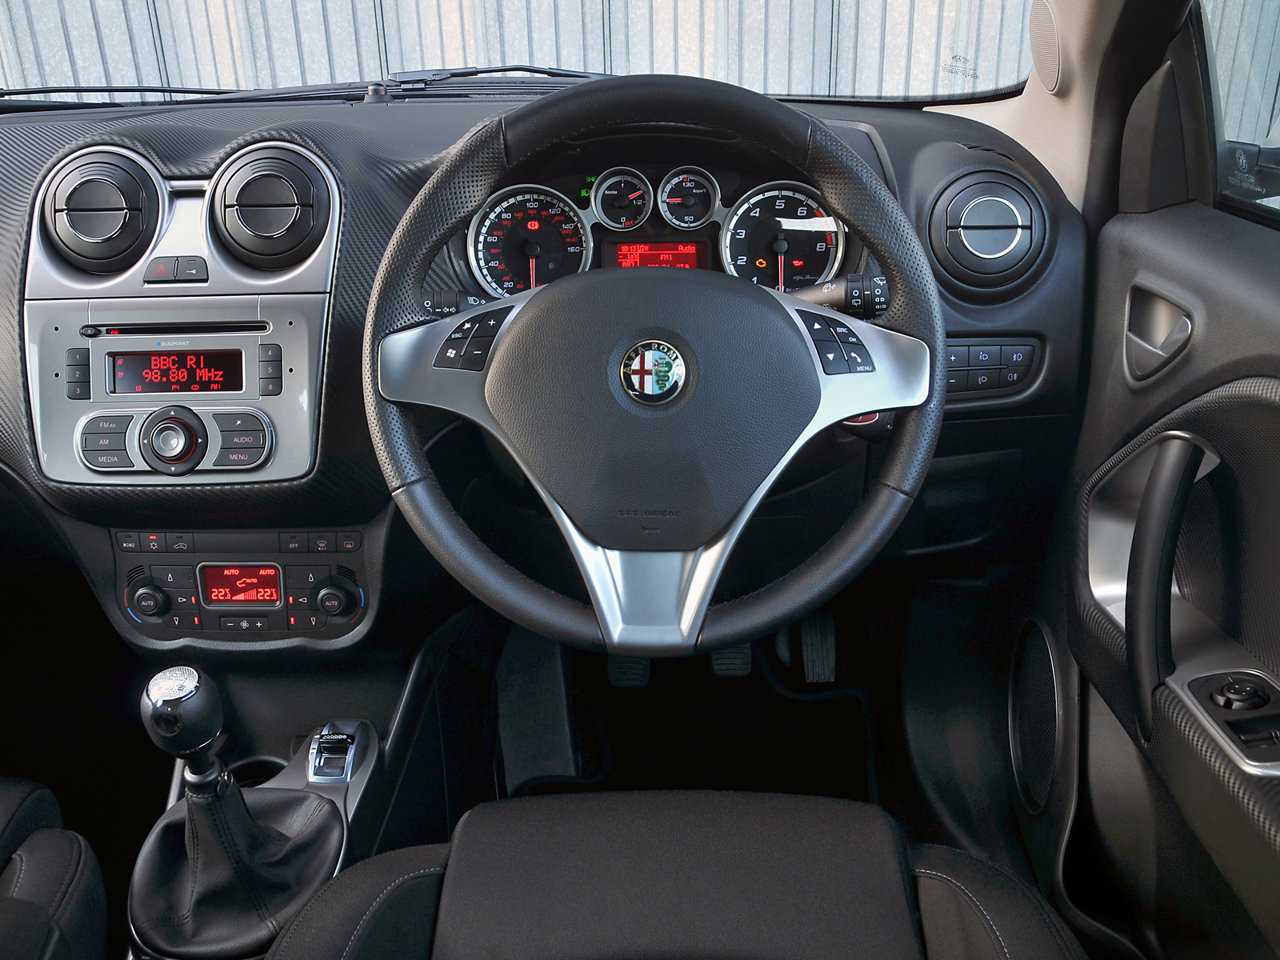 Alfa romeo giulietta progression 2014 review